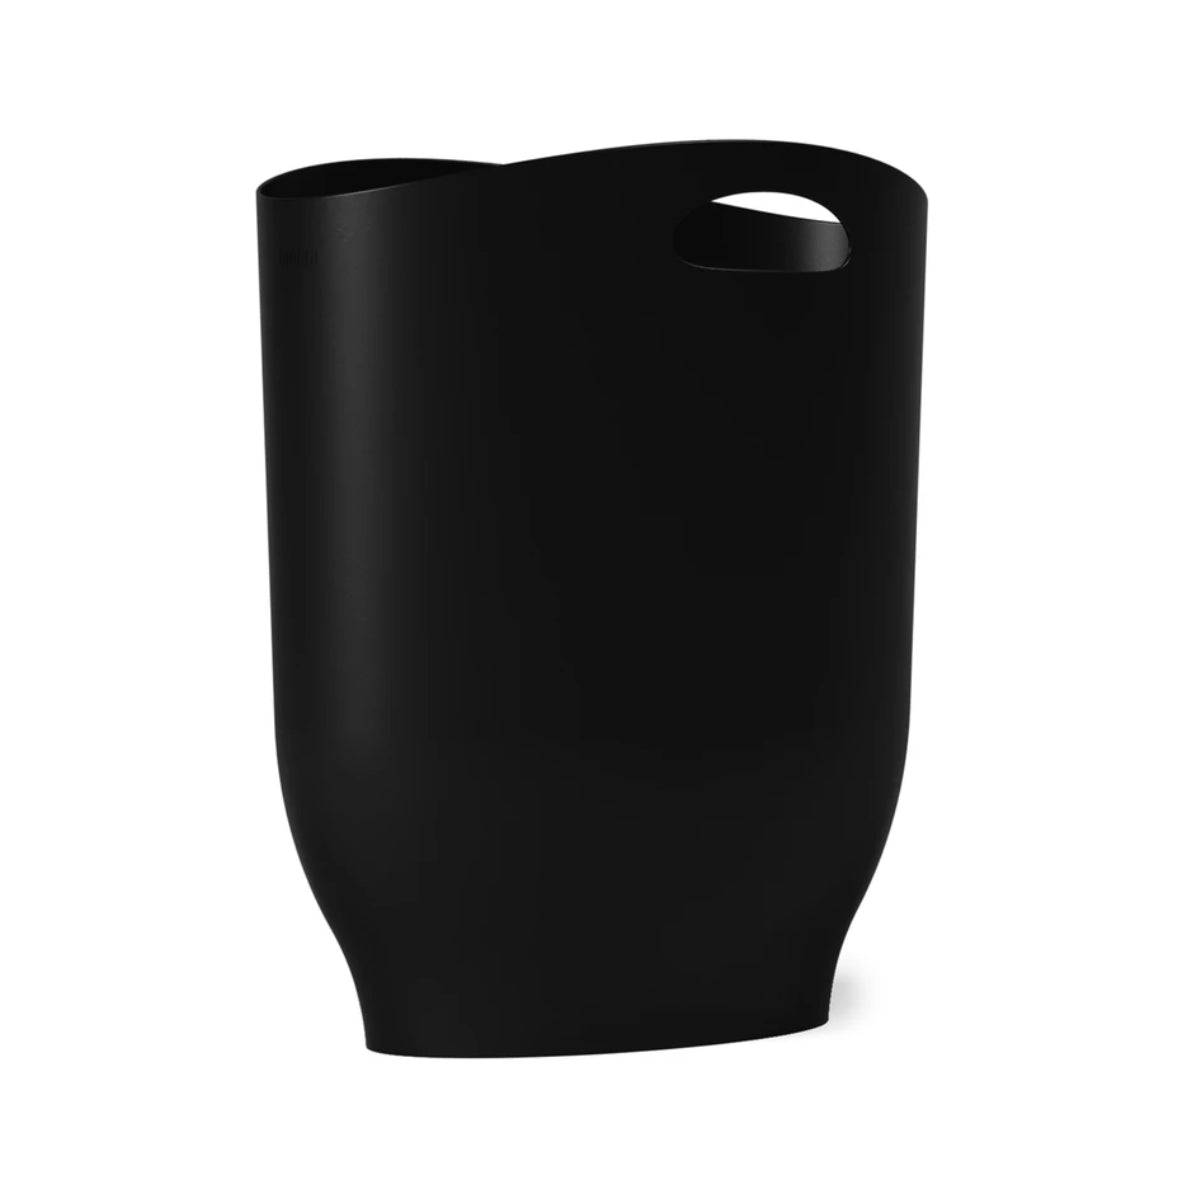 Umbra Harlo trash can, 9 Liters